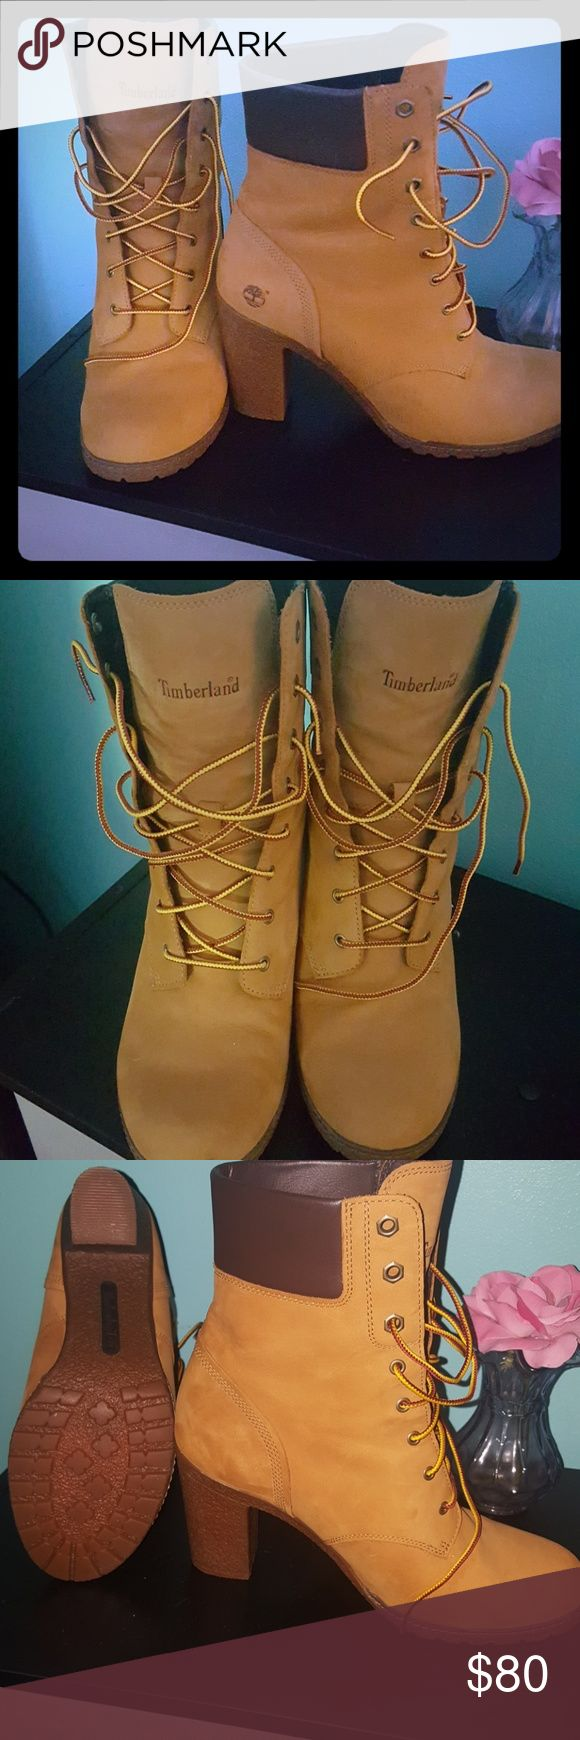 Timberland heel boots worn once !!! Timberland heels  Worn once  Brand new  Size 10  No flaws  Super cute Timberland Shoes